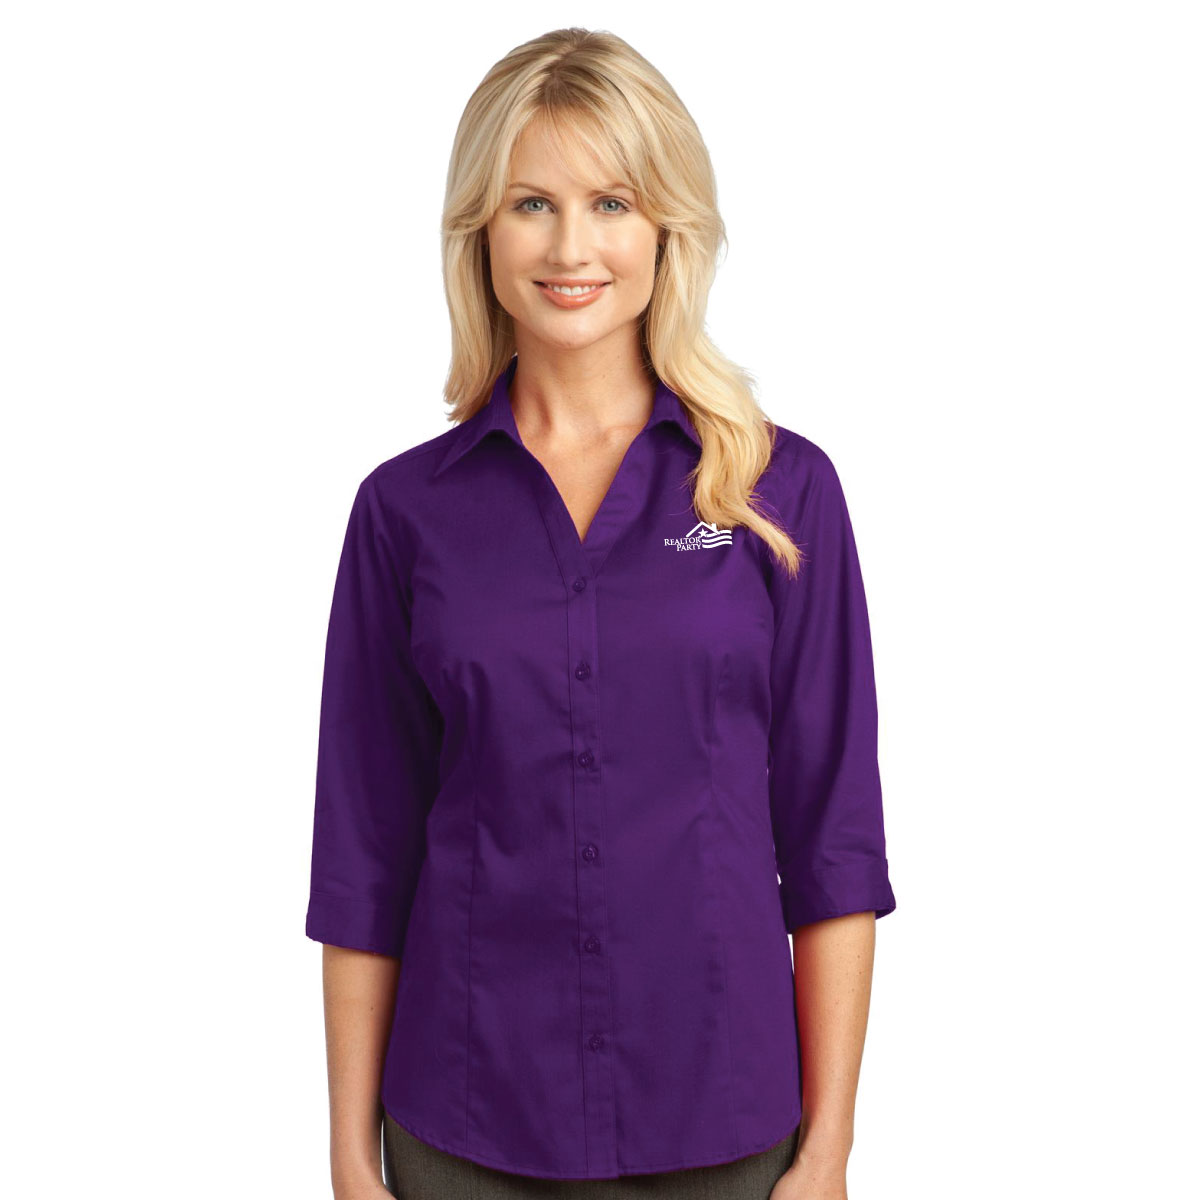 REALTOR® Party Ladies 3/4-Sleeve Blouse Twils,Ladiess,sleeves,buttons,downs,khaki,chambrey